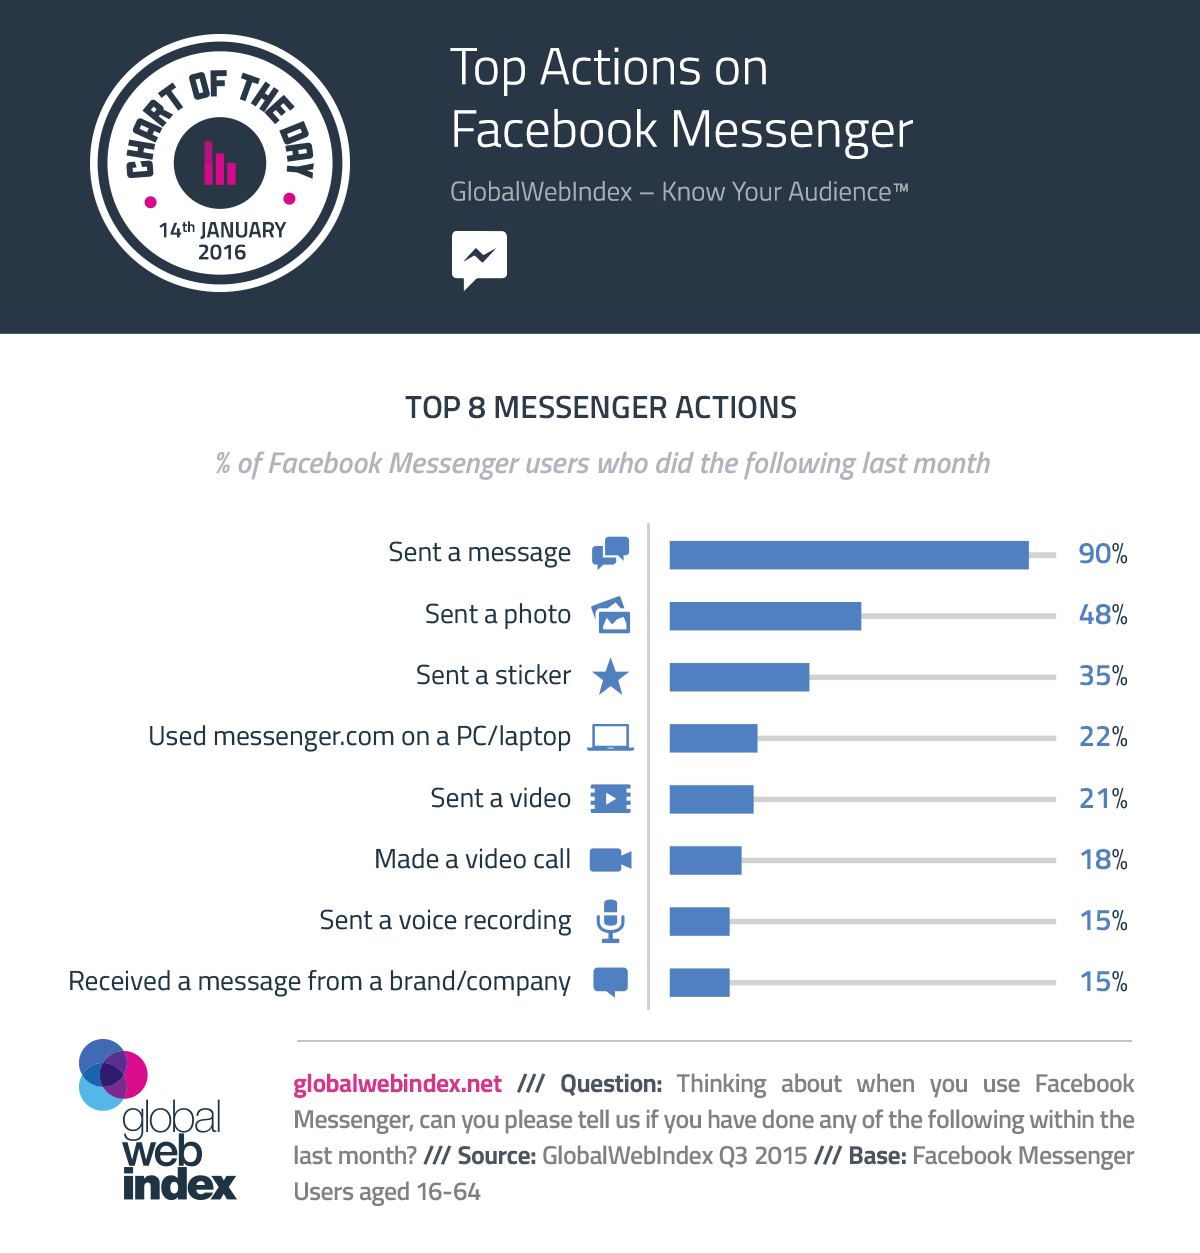 Top Actions on Facebook Messenger